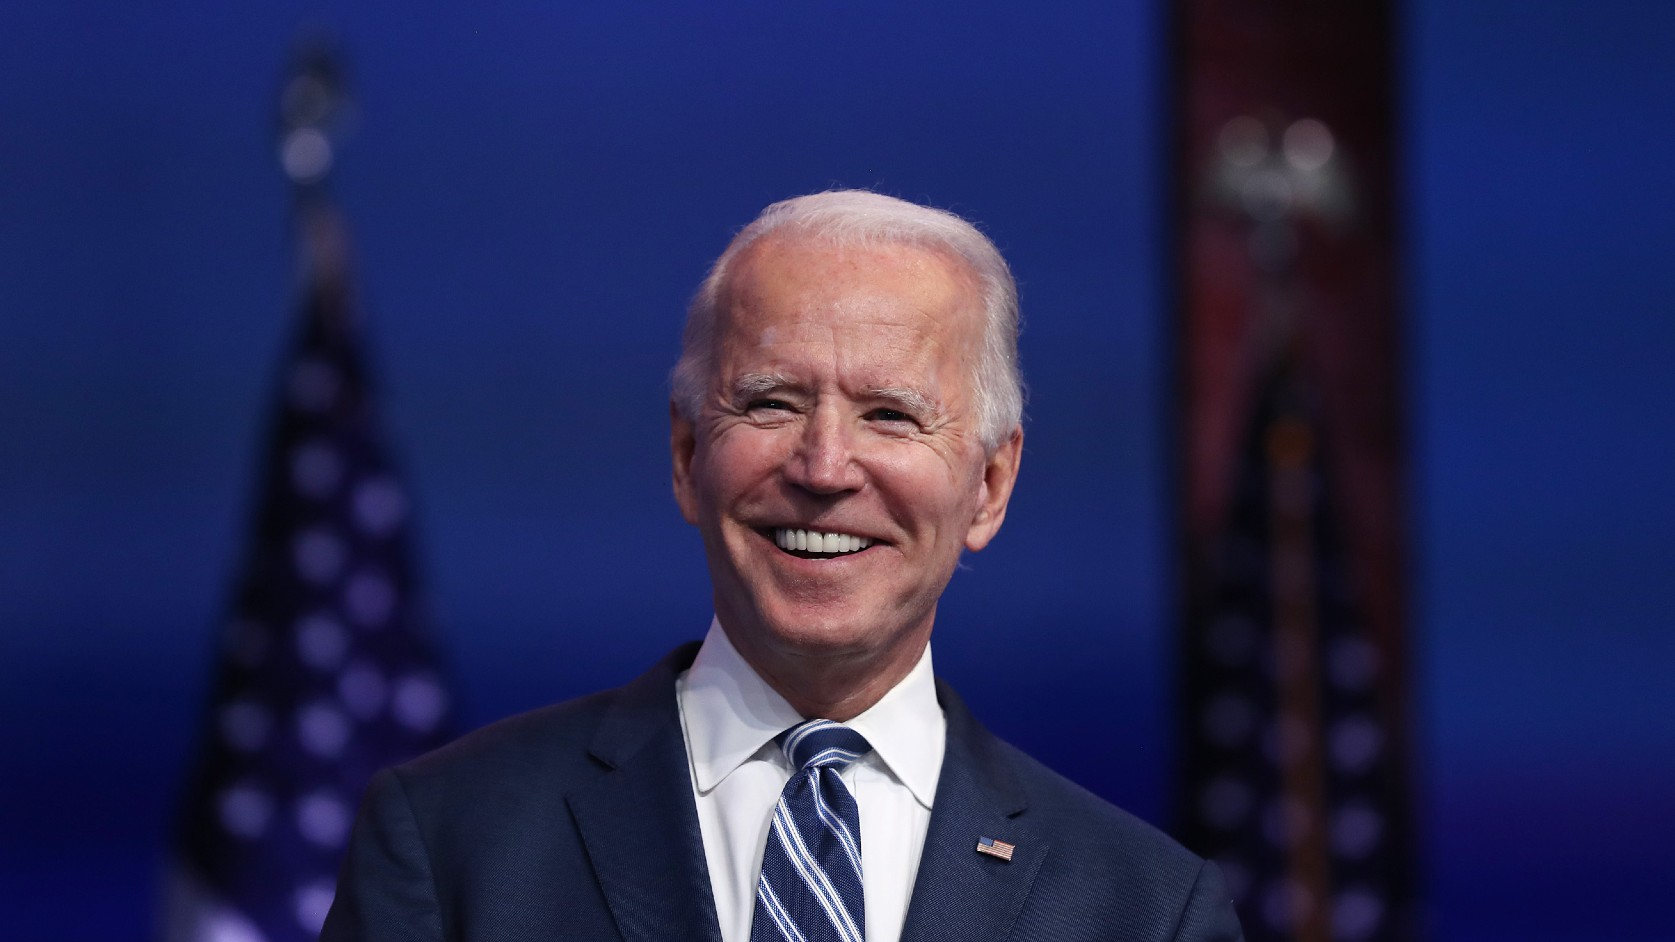 U.S. President-elect Joe Biden addresses the media about the Trump Administration's lawsuit to overturn the Affordable Care Act on November 10, 2020 at the Queen Theater in Wilmington, Delaware. (Joe Raedle/Getty Images)